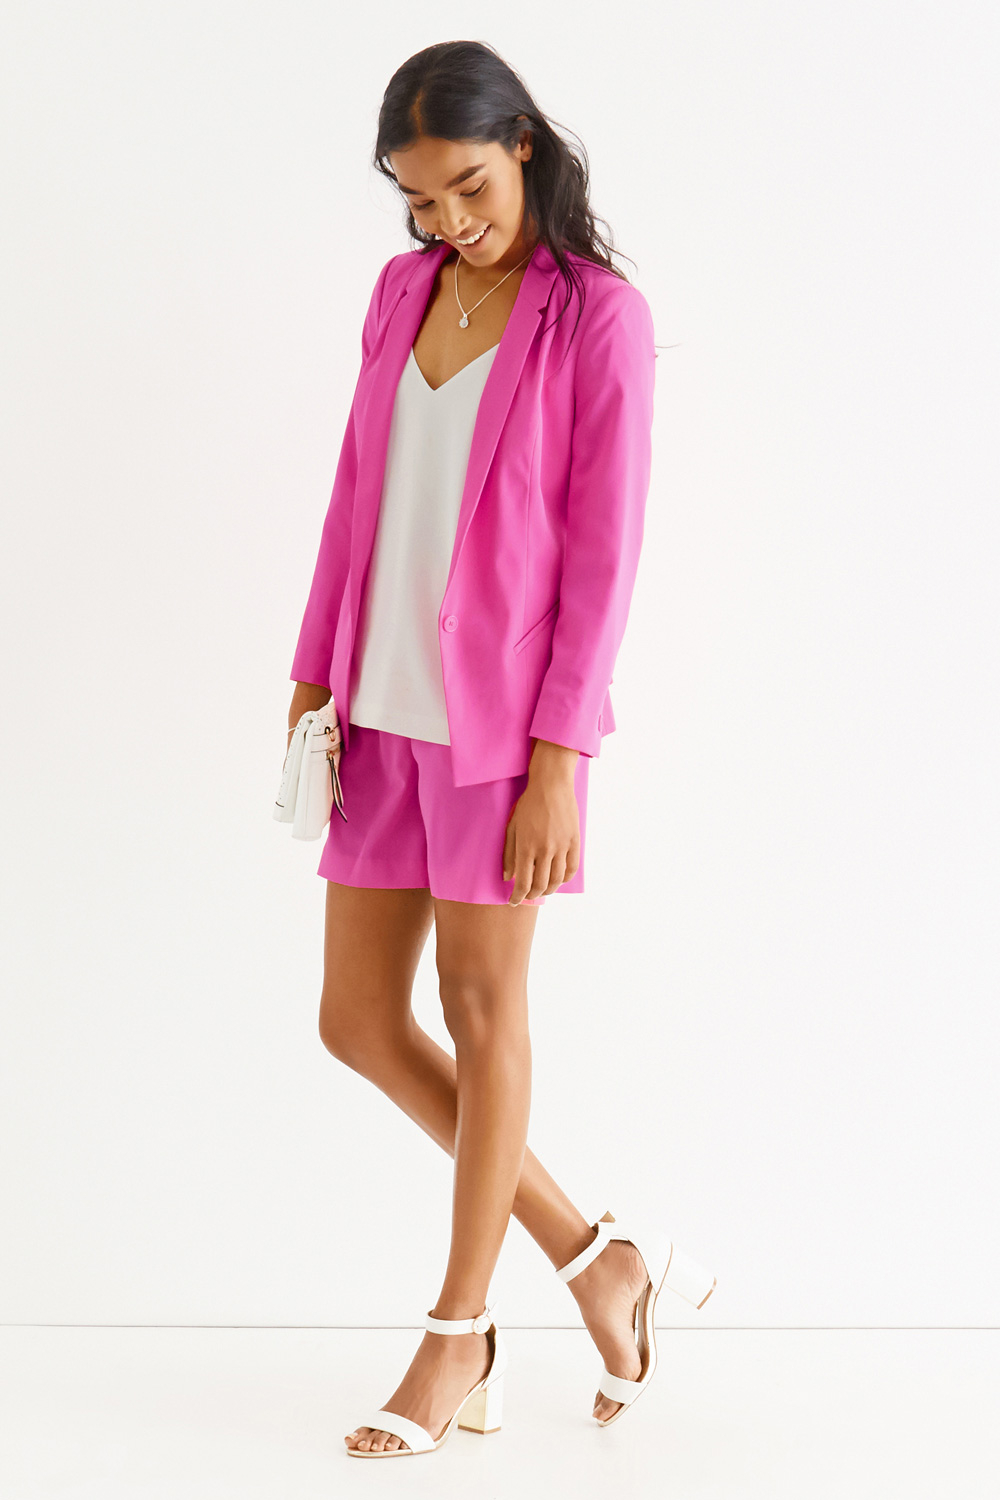 cb70dd49fab2 Oasis Fluro Soft Suit Jacket in Pink - Lyst